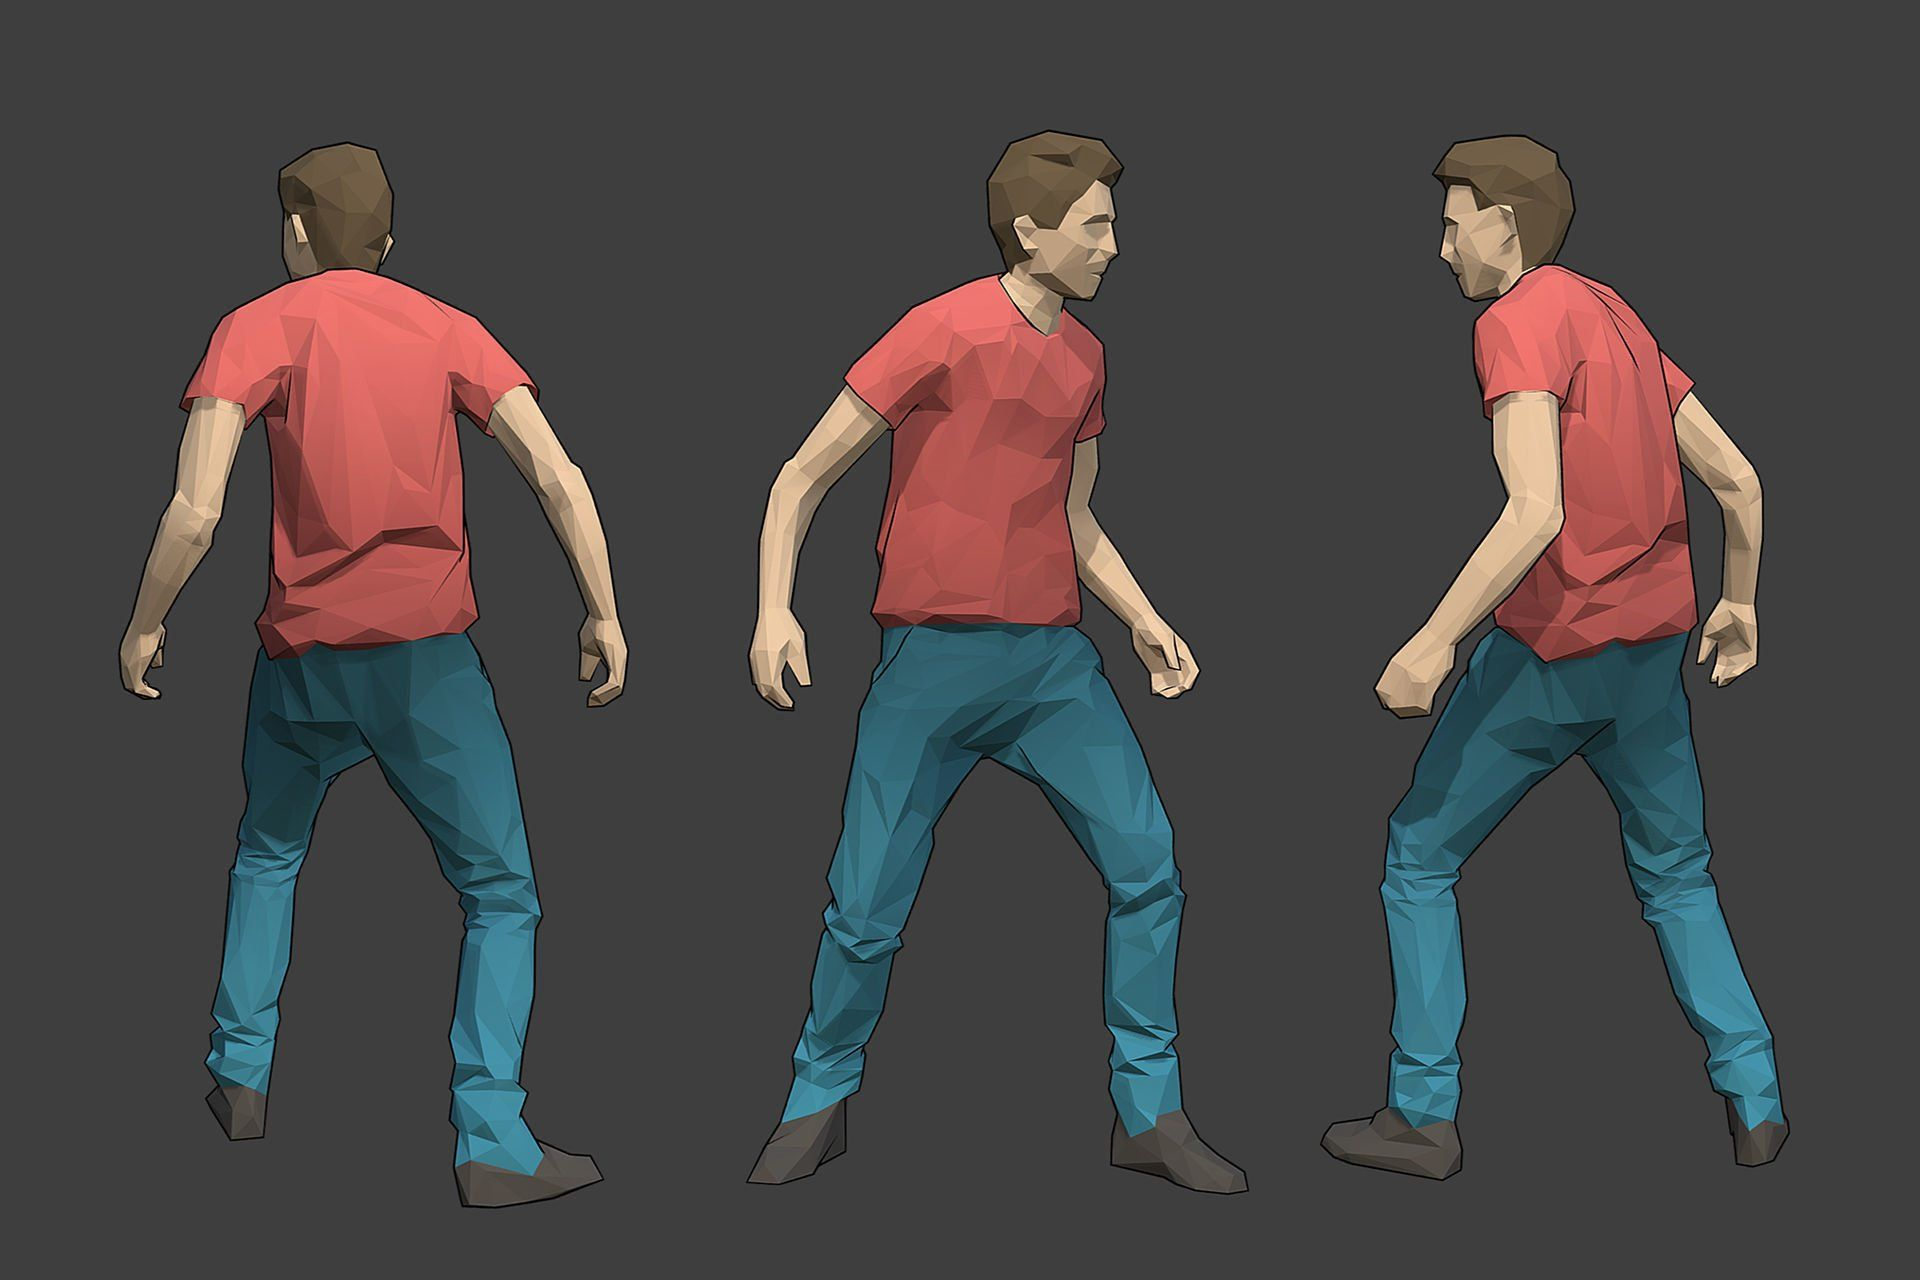 Lowpoly Male Character Tim Low poly character, Low